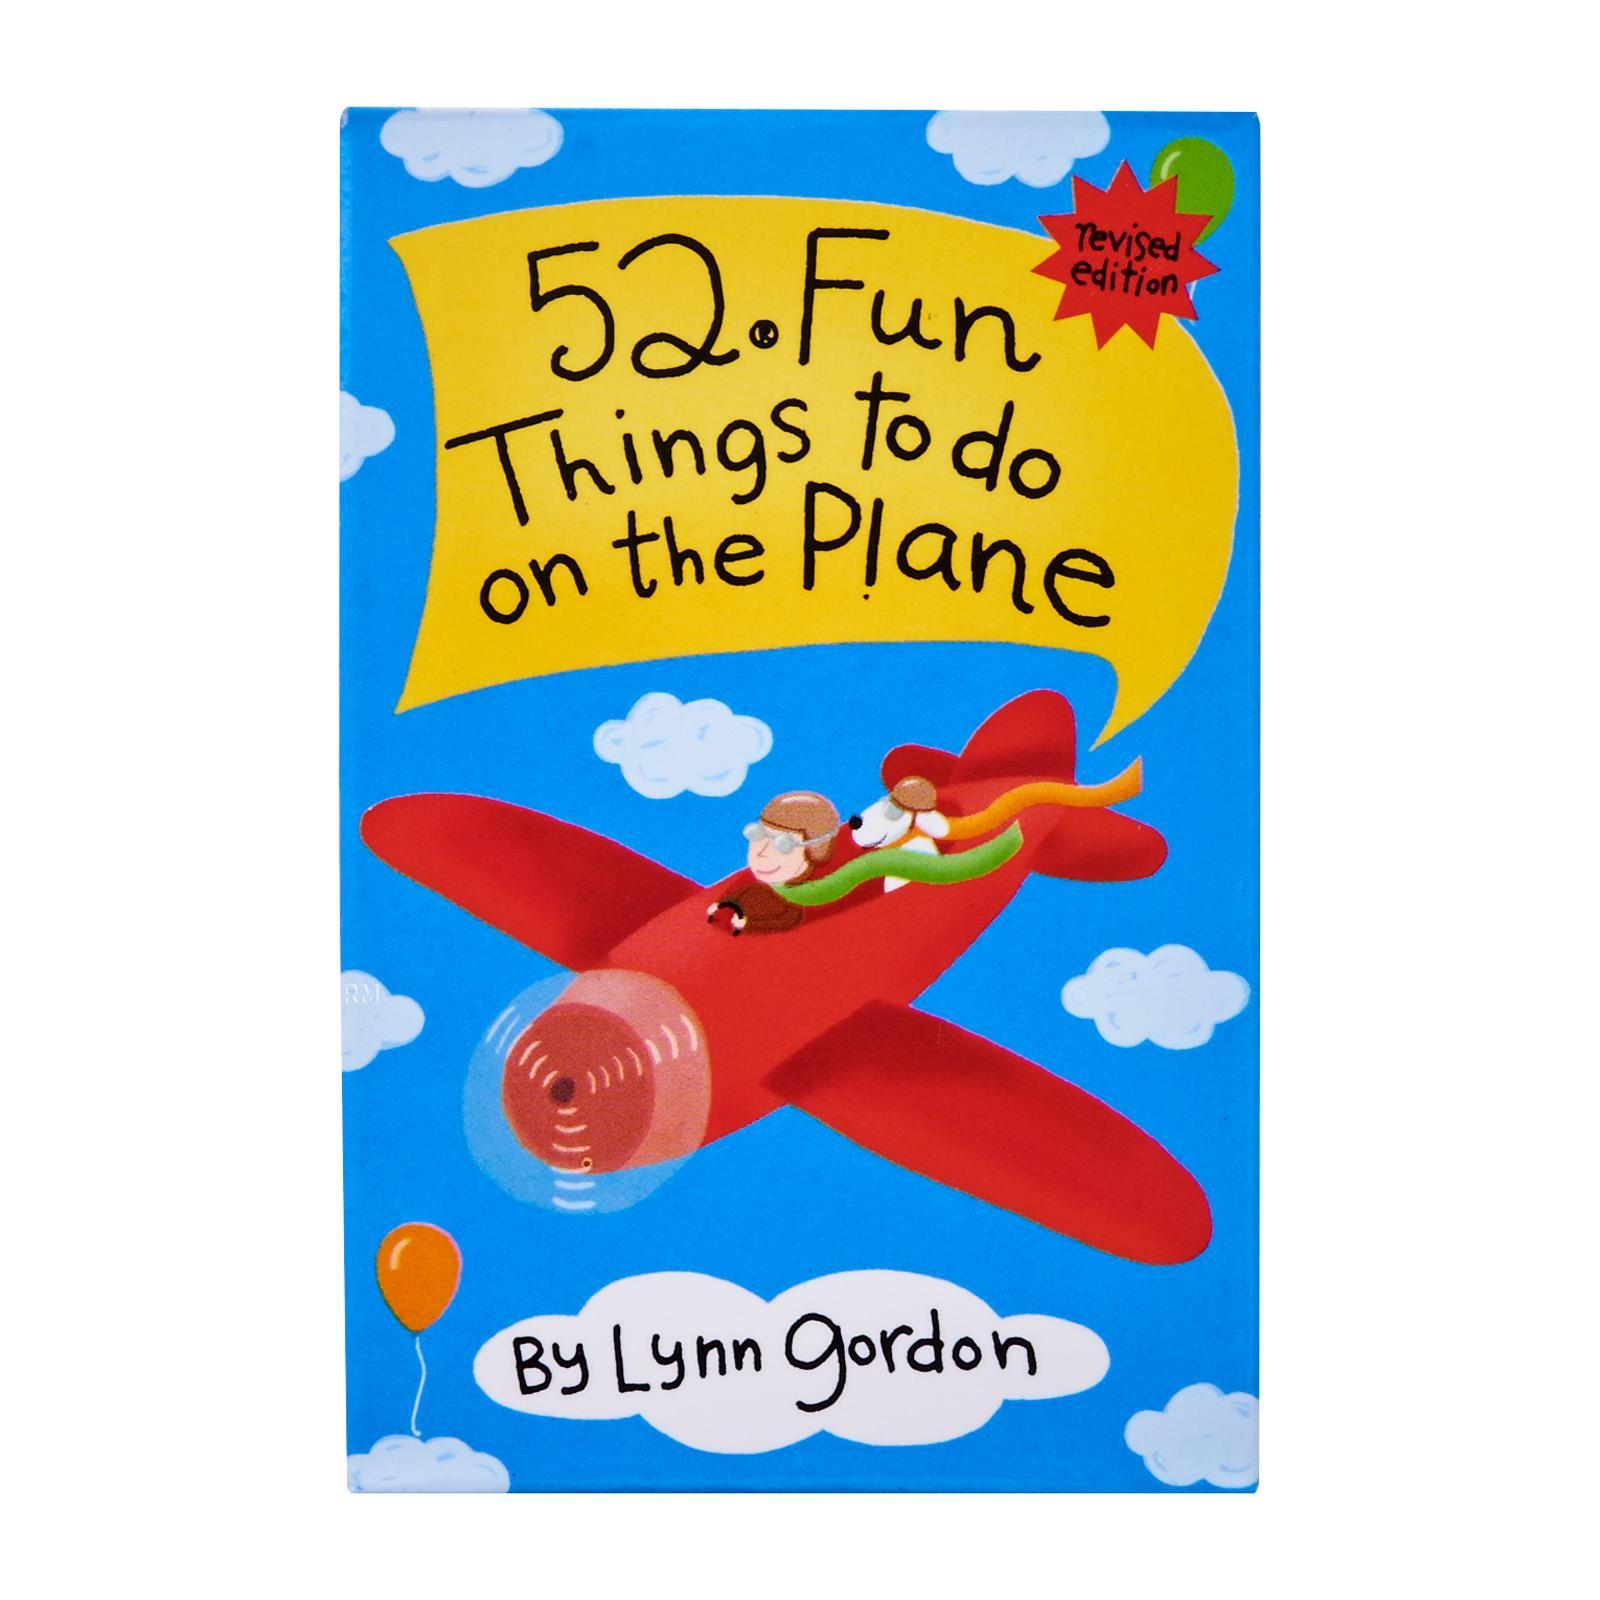 Chronicle Books 52 Fun Things To Do On The Plane